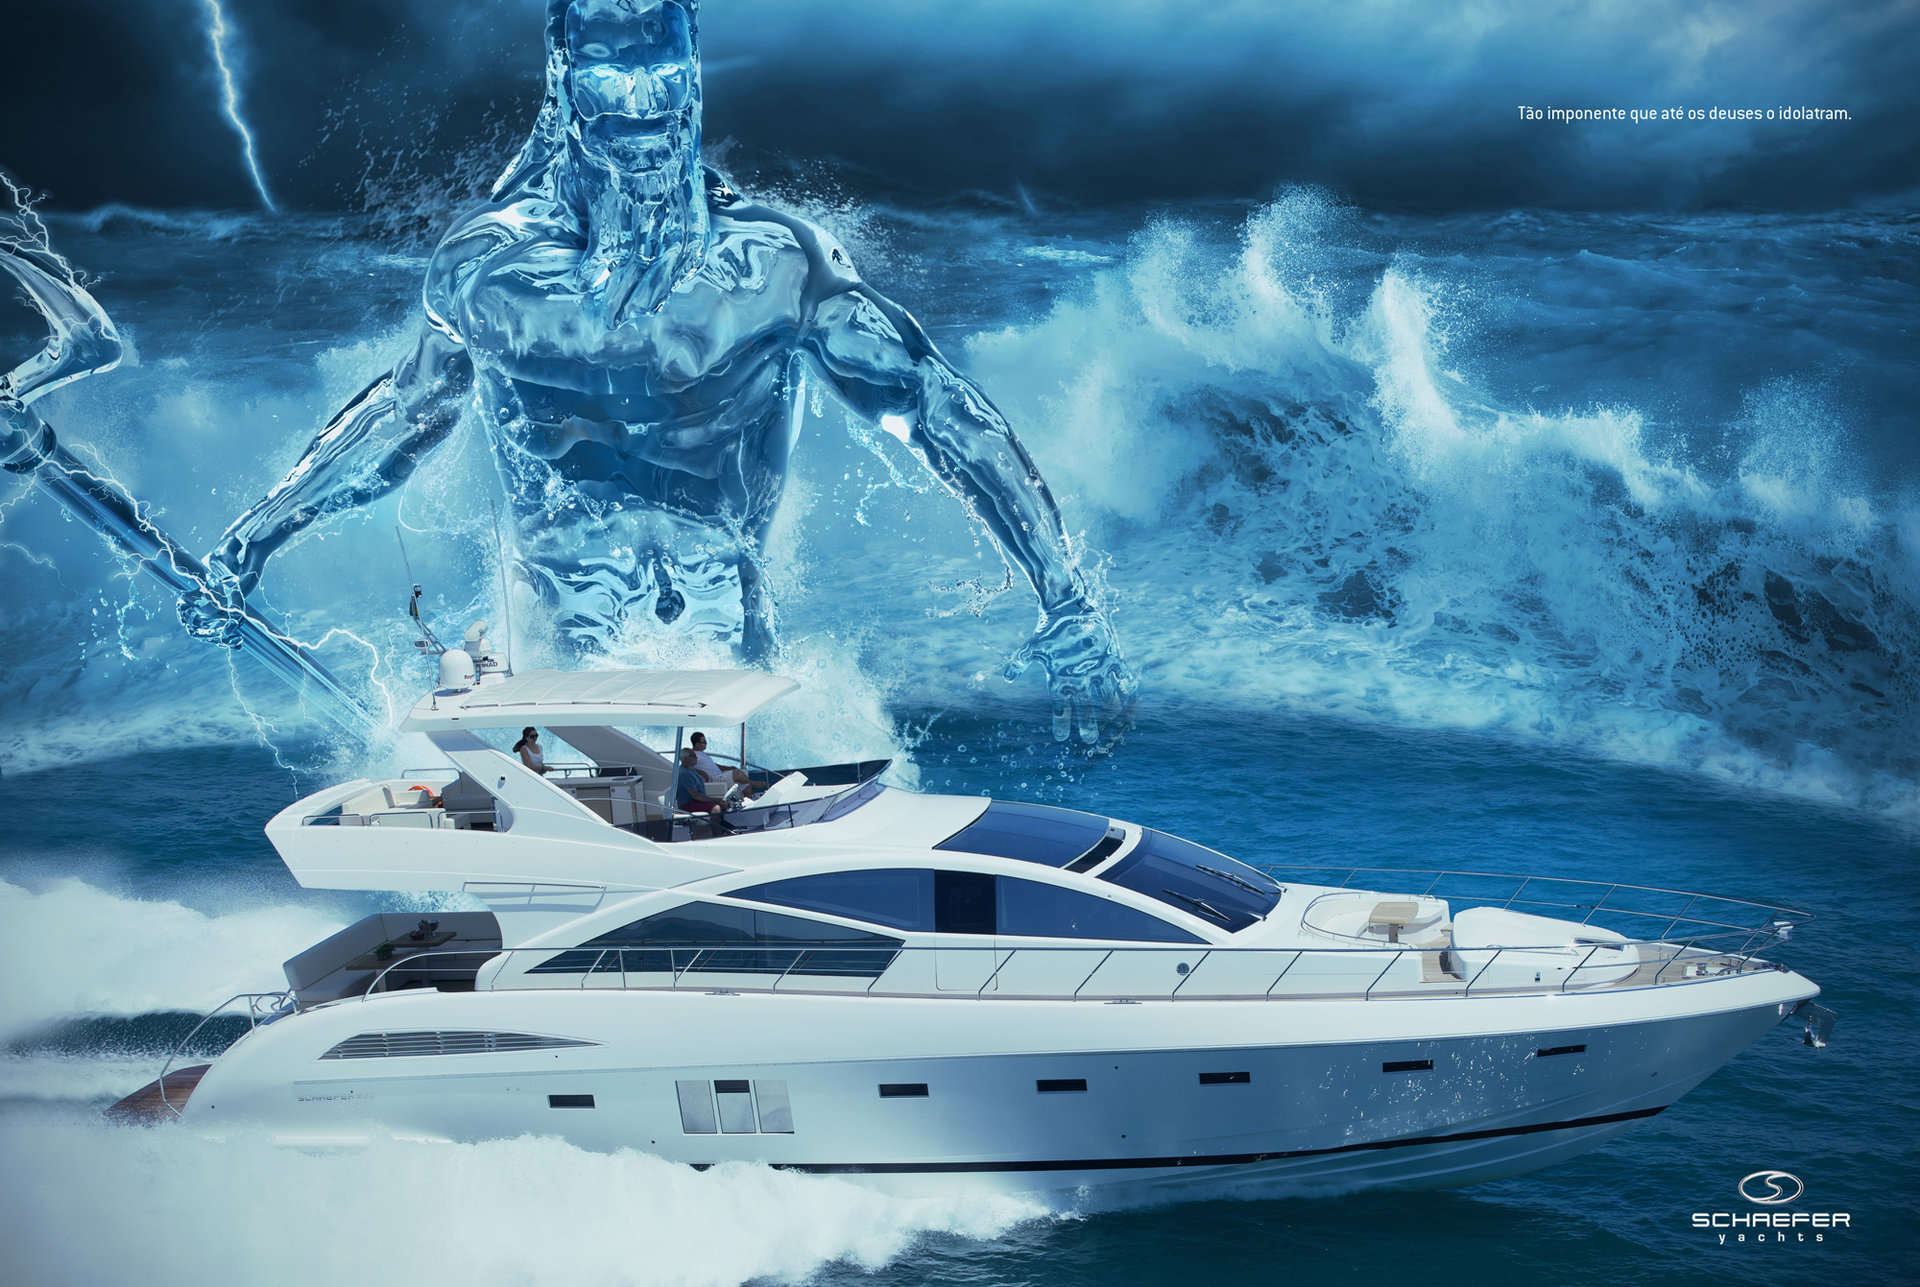 The Art - Advertising for a yachts company.